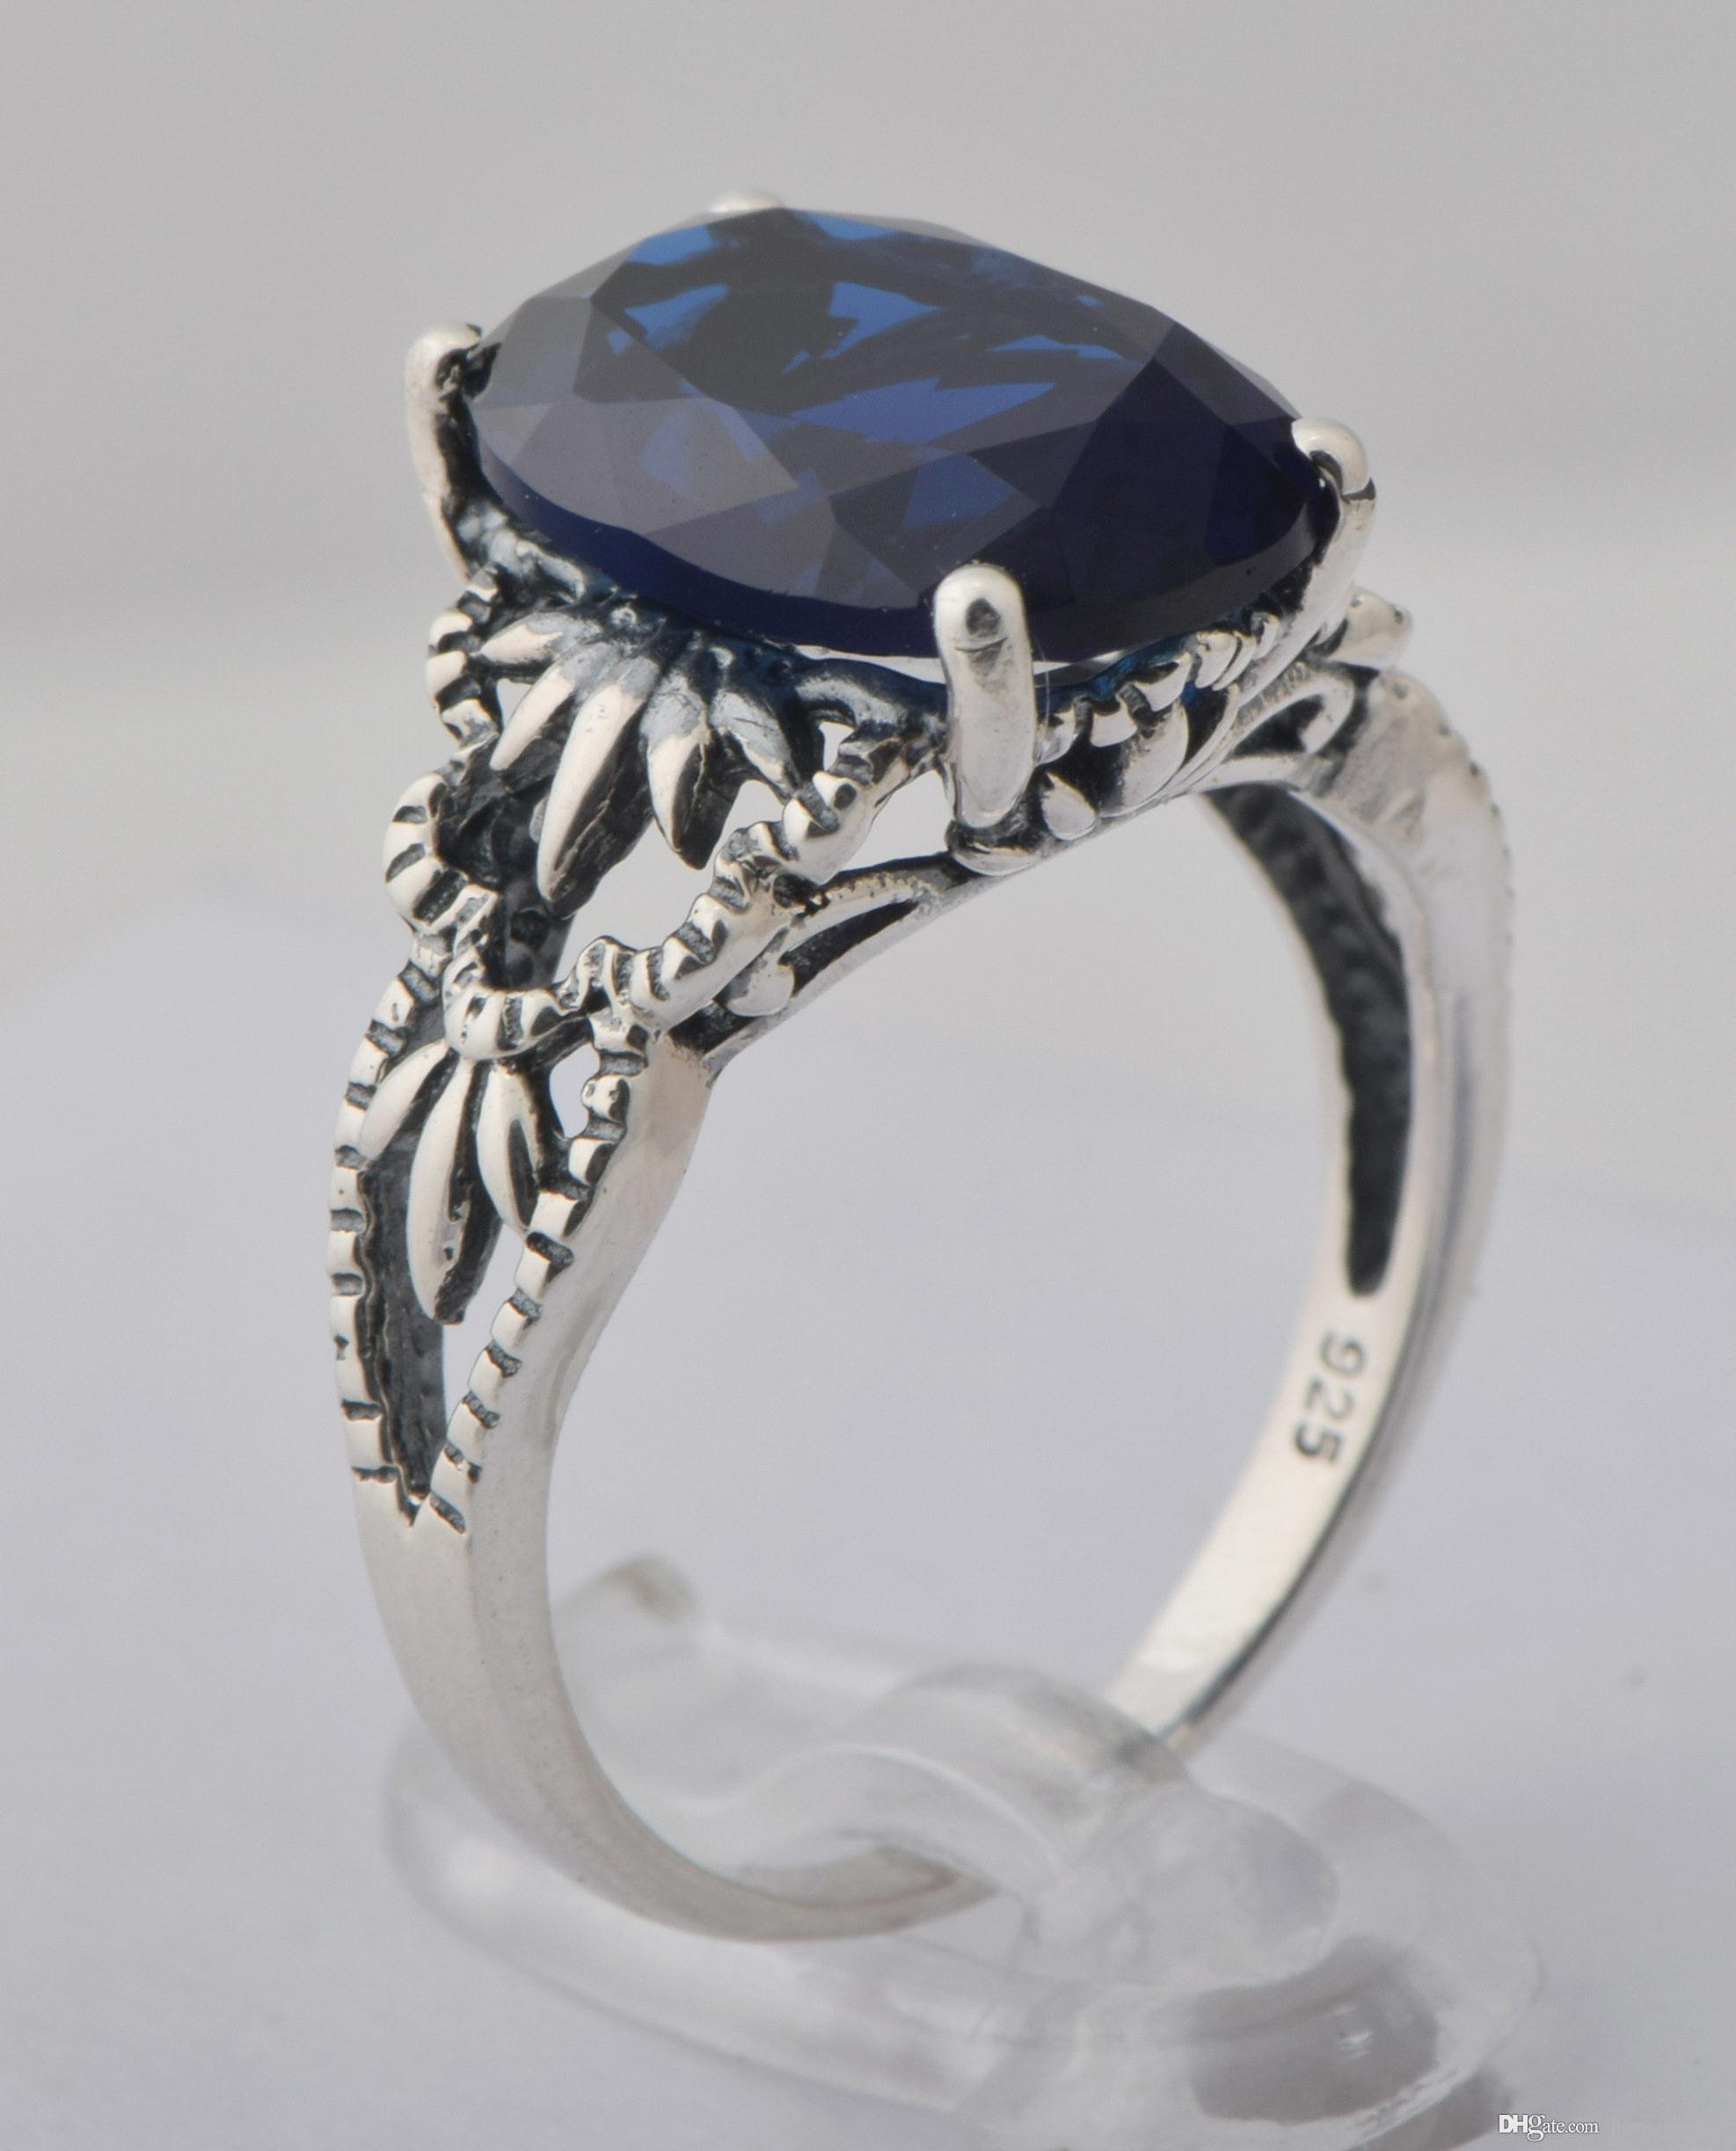 samuel rings gold number ring cluster d product sapphire and diamond h ceylon saffire webstore